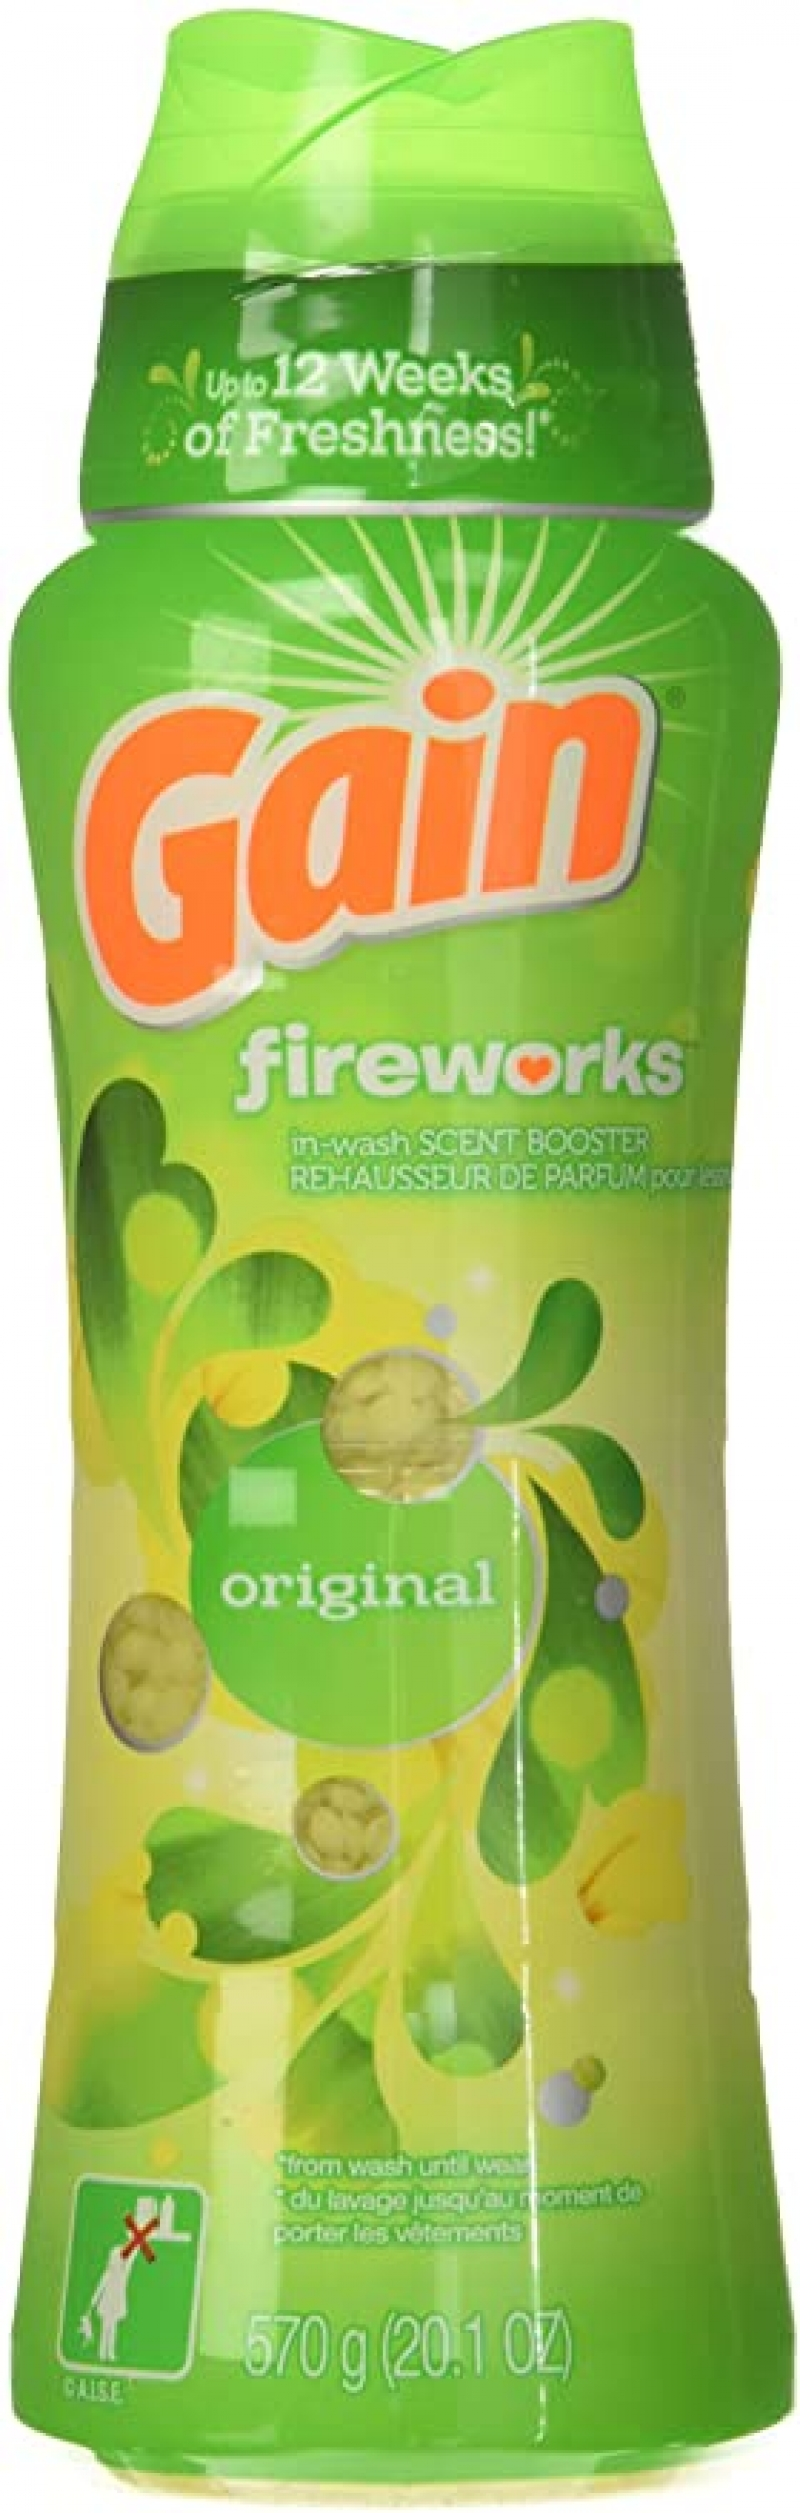 ihocon: Gain Fireworks In-Wash Scent Booster, Original, 20.1 Ounce 衣物芳香劑